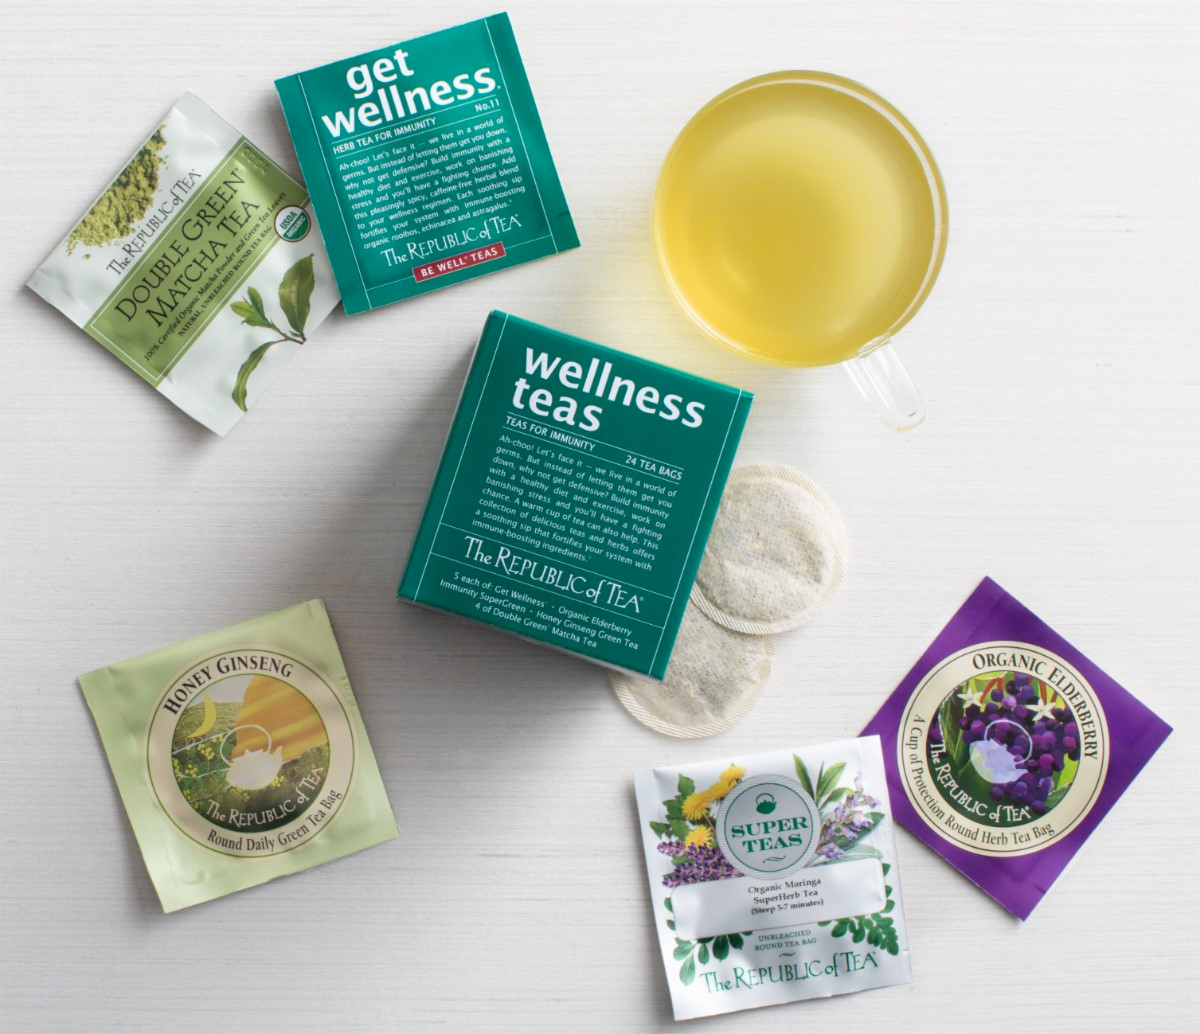 Wellness Collection by The Republic of Tea